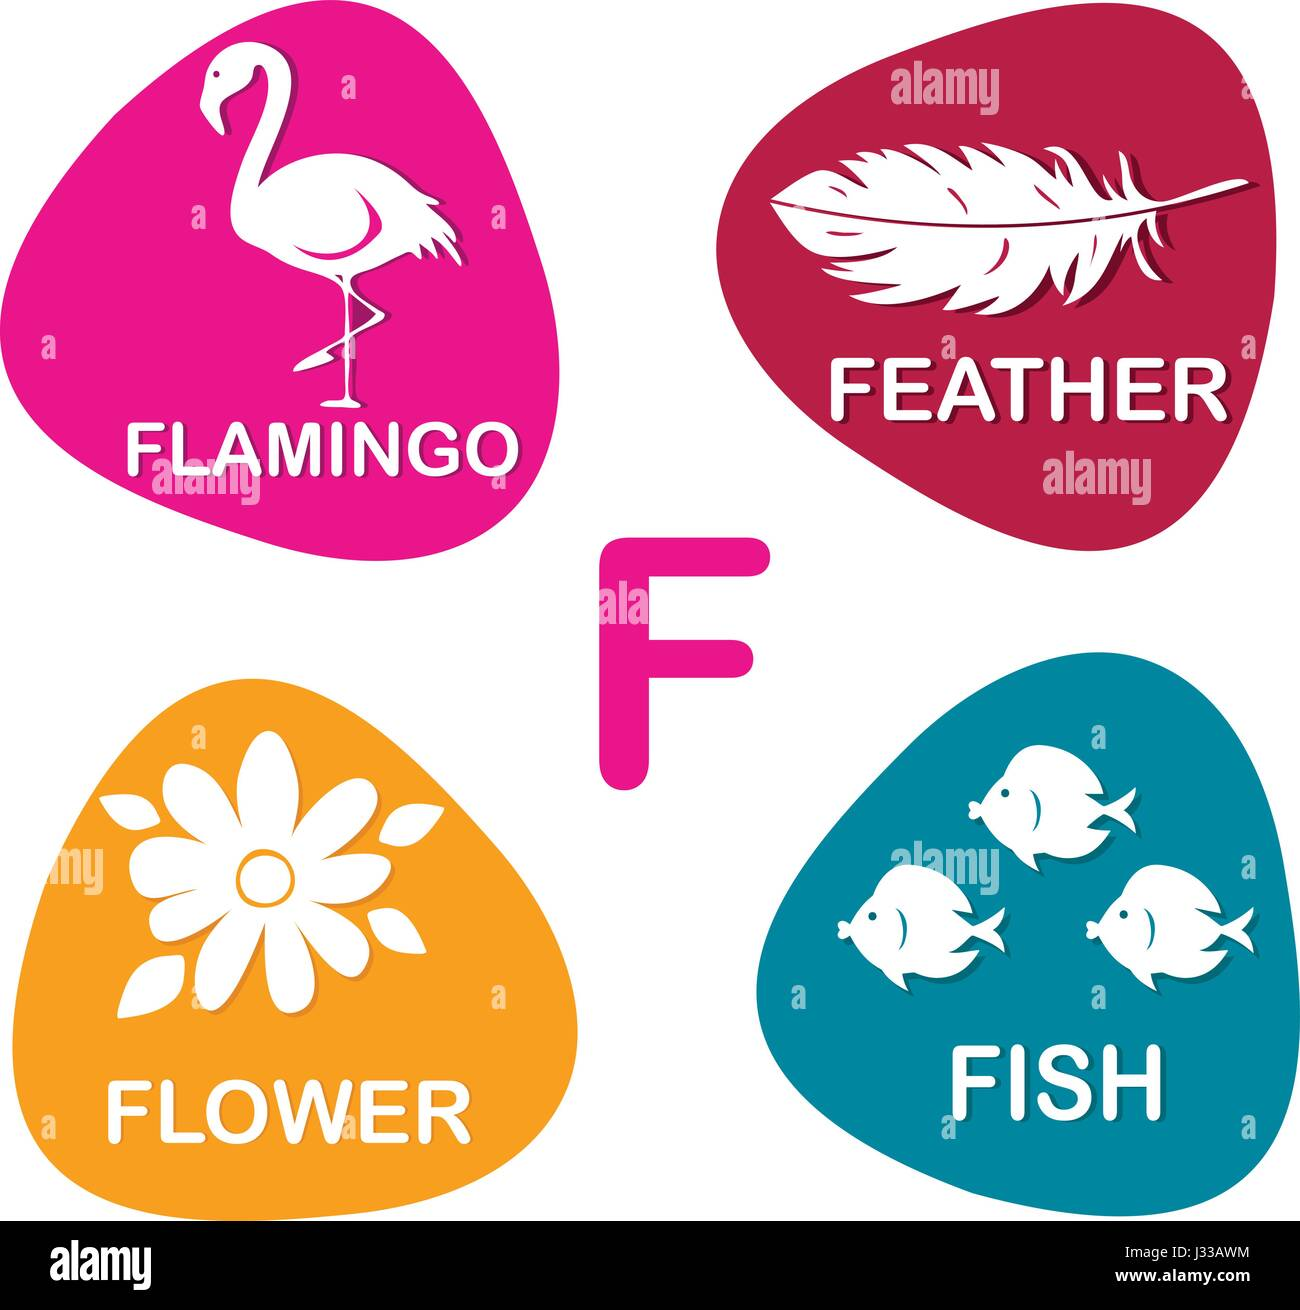 Cute alphabet in vector f letter for flamingo feather flower and cute alphabet in vector f letter for flamingo feather flower and fish altavistaventures Image collections